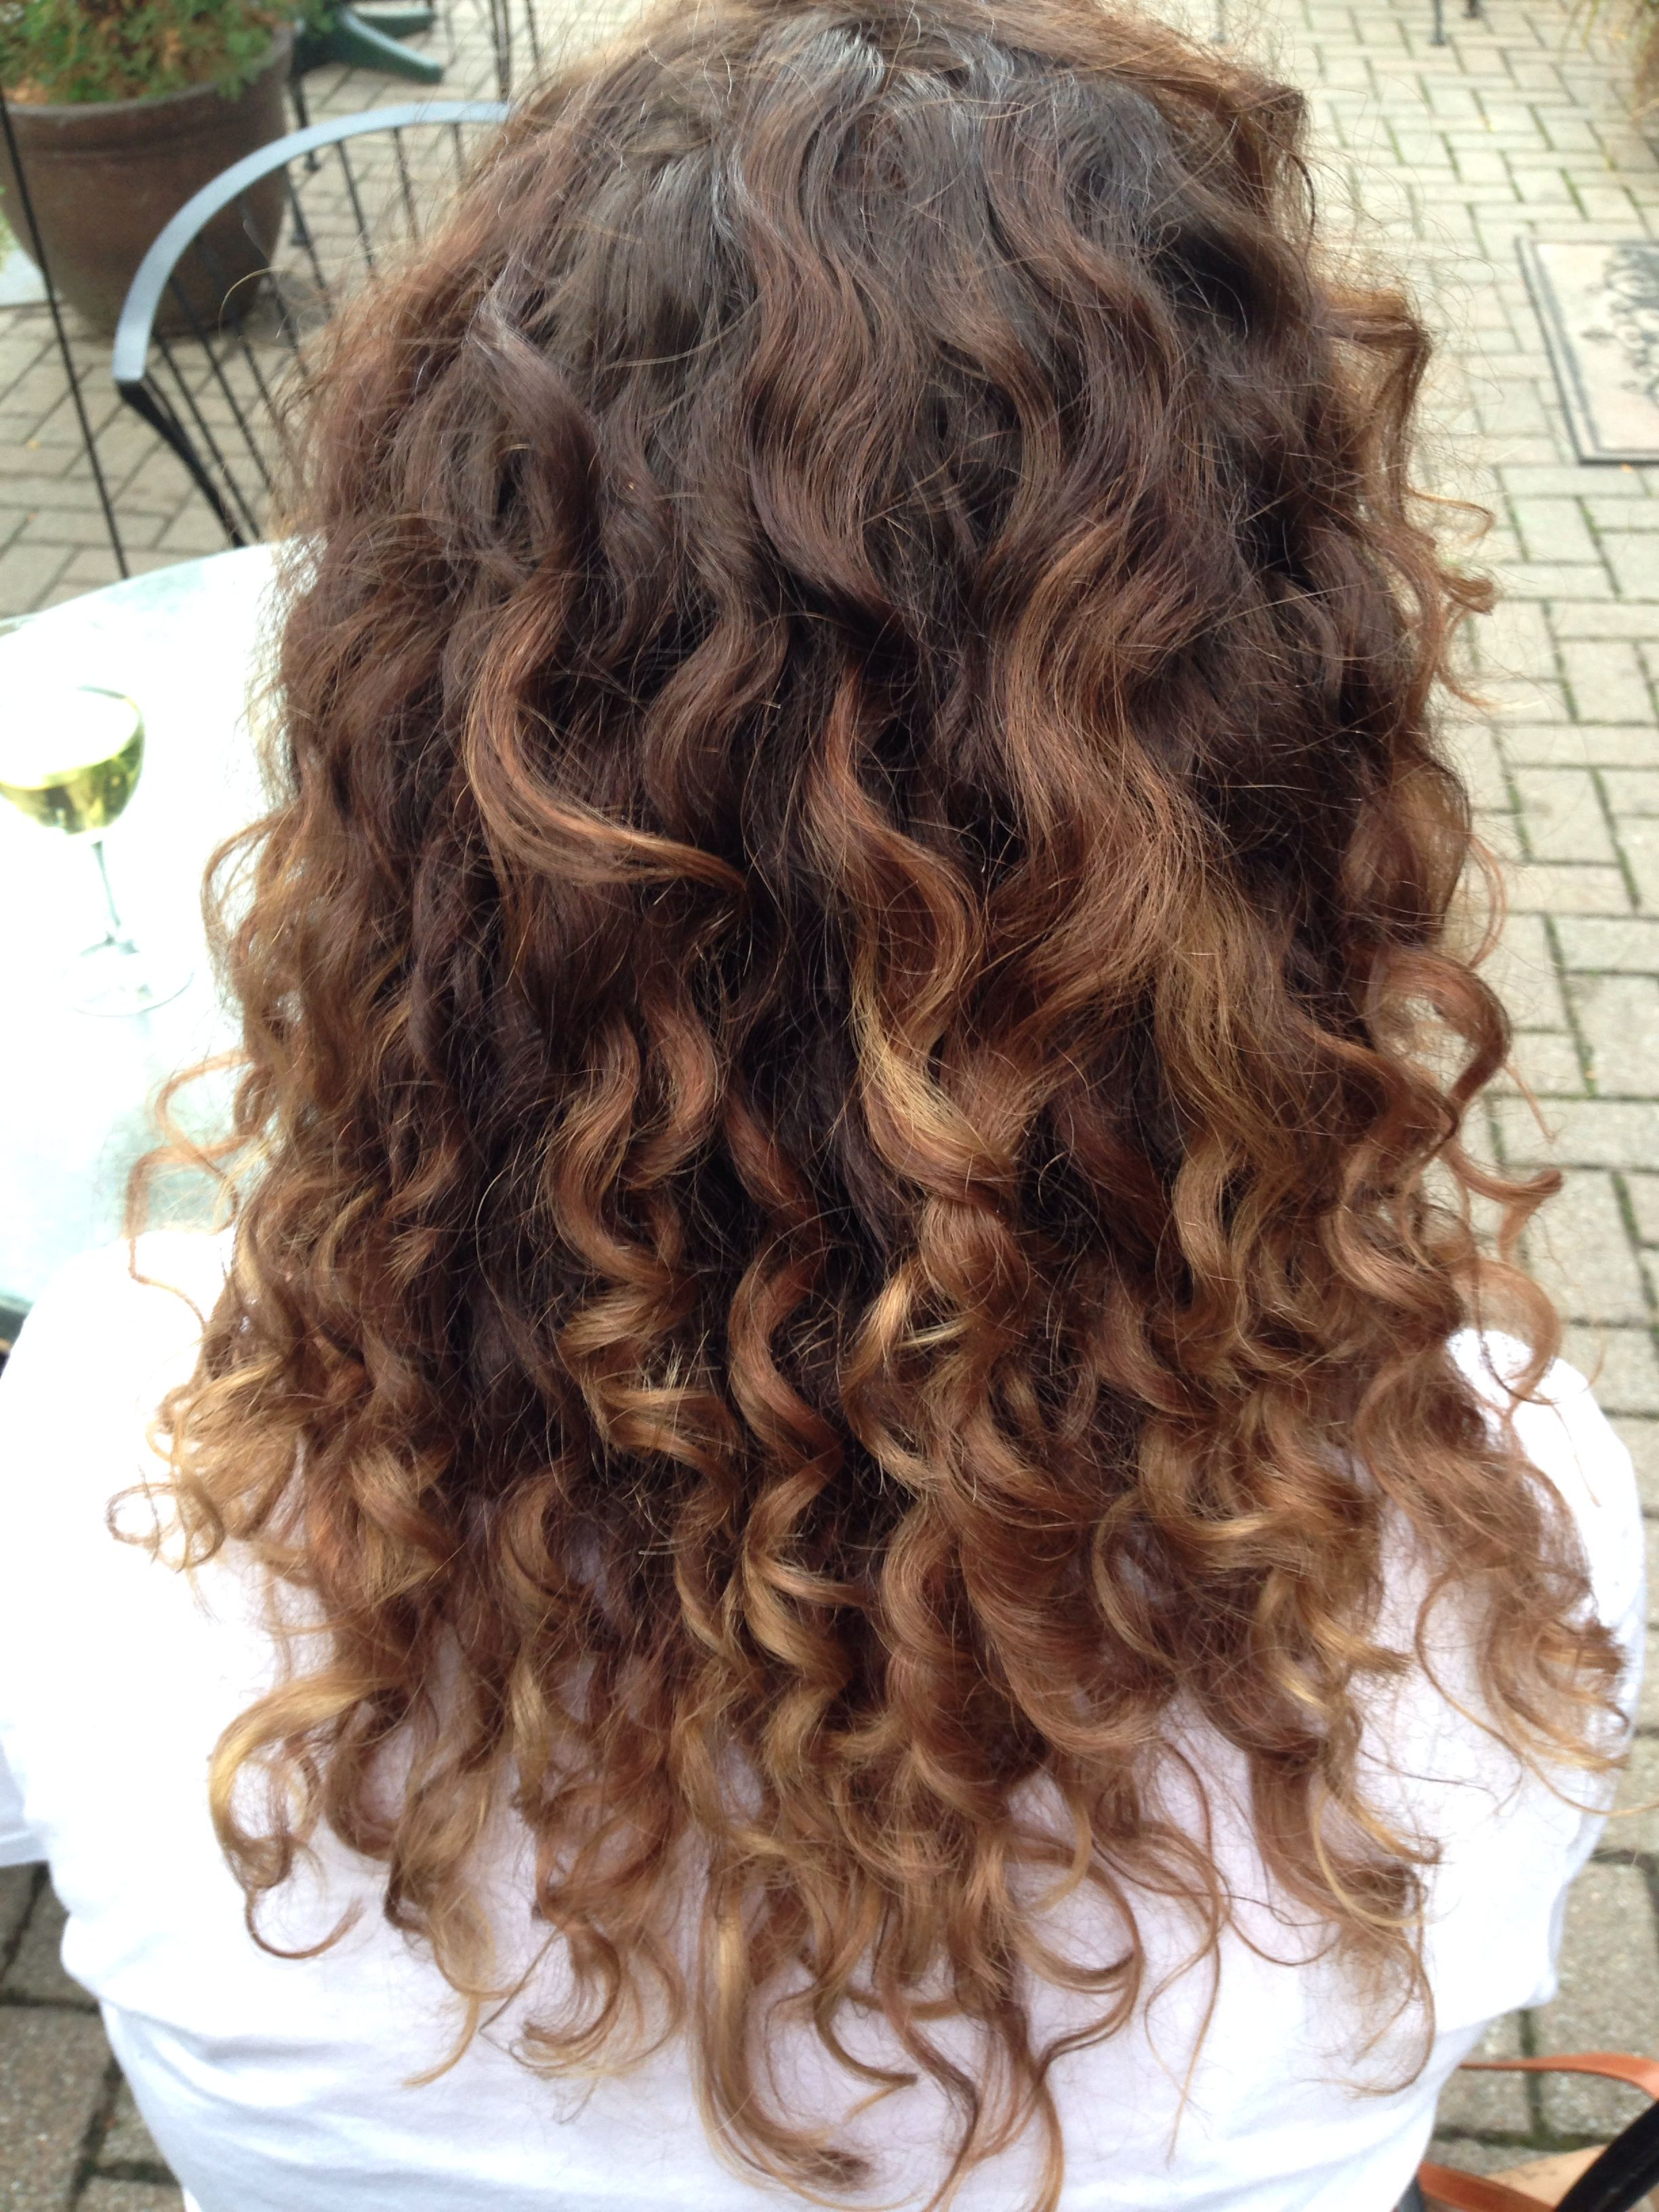 naturally curly hair carmel ombr